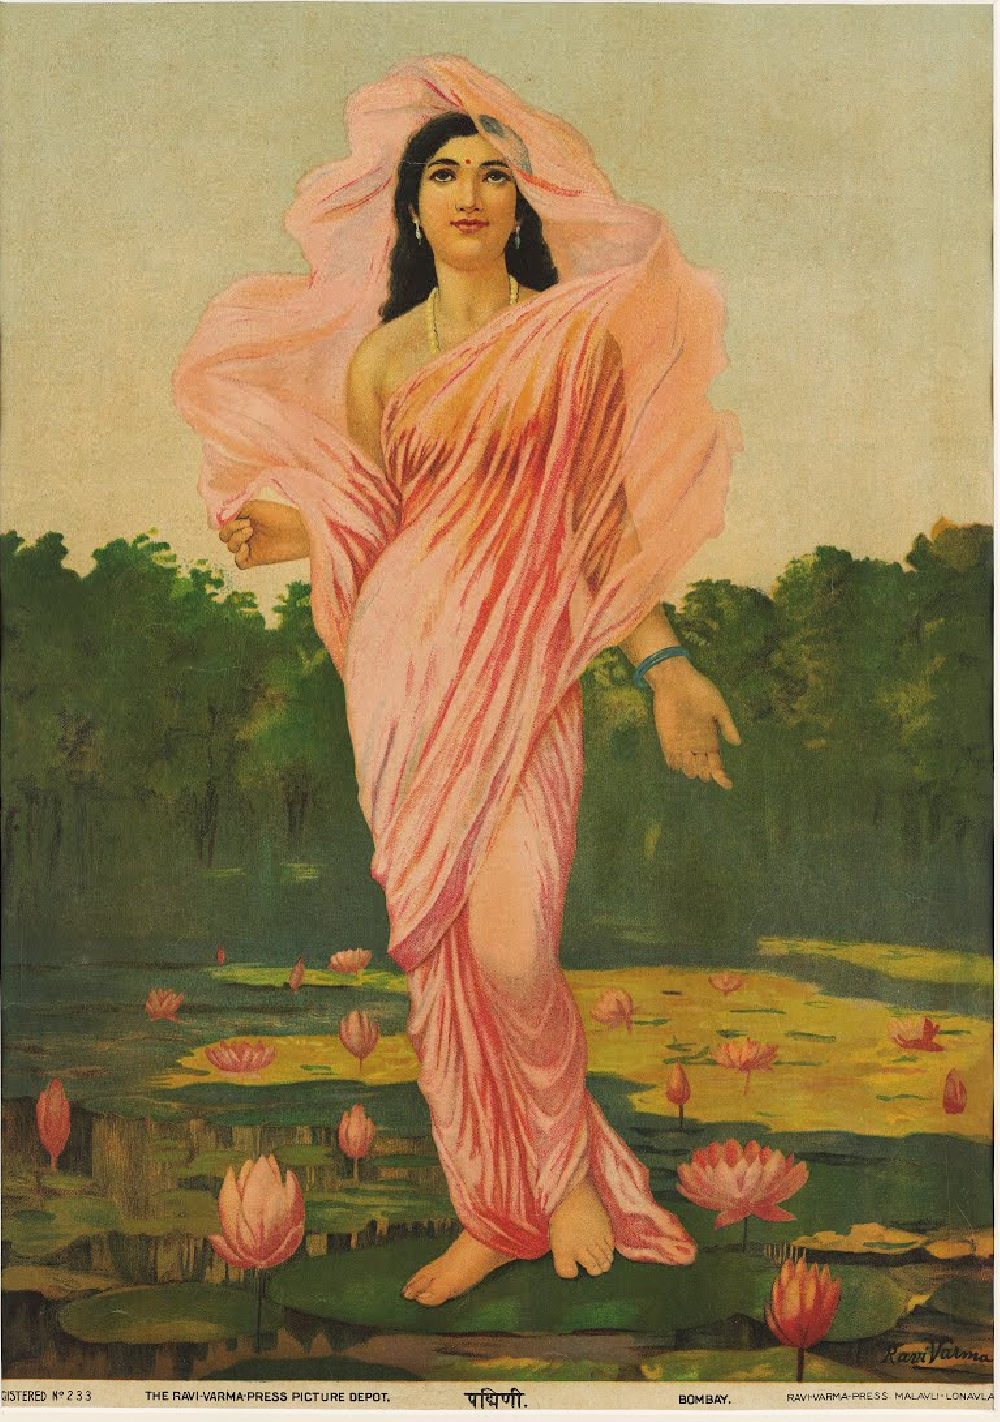 illustration of an Indian woman in traditional pink garb walking on a river of lily pads